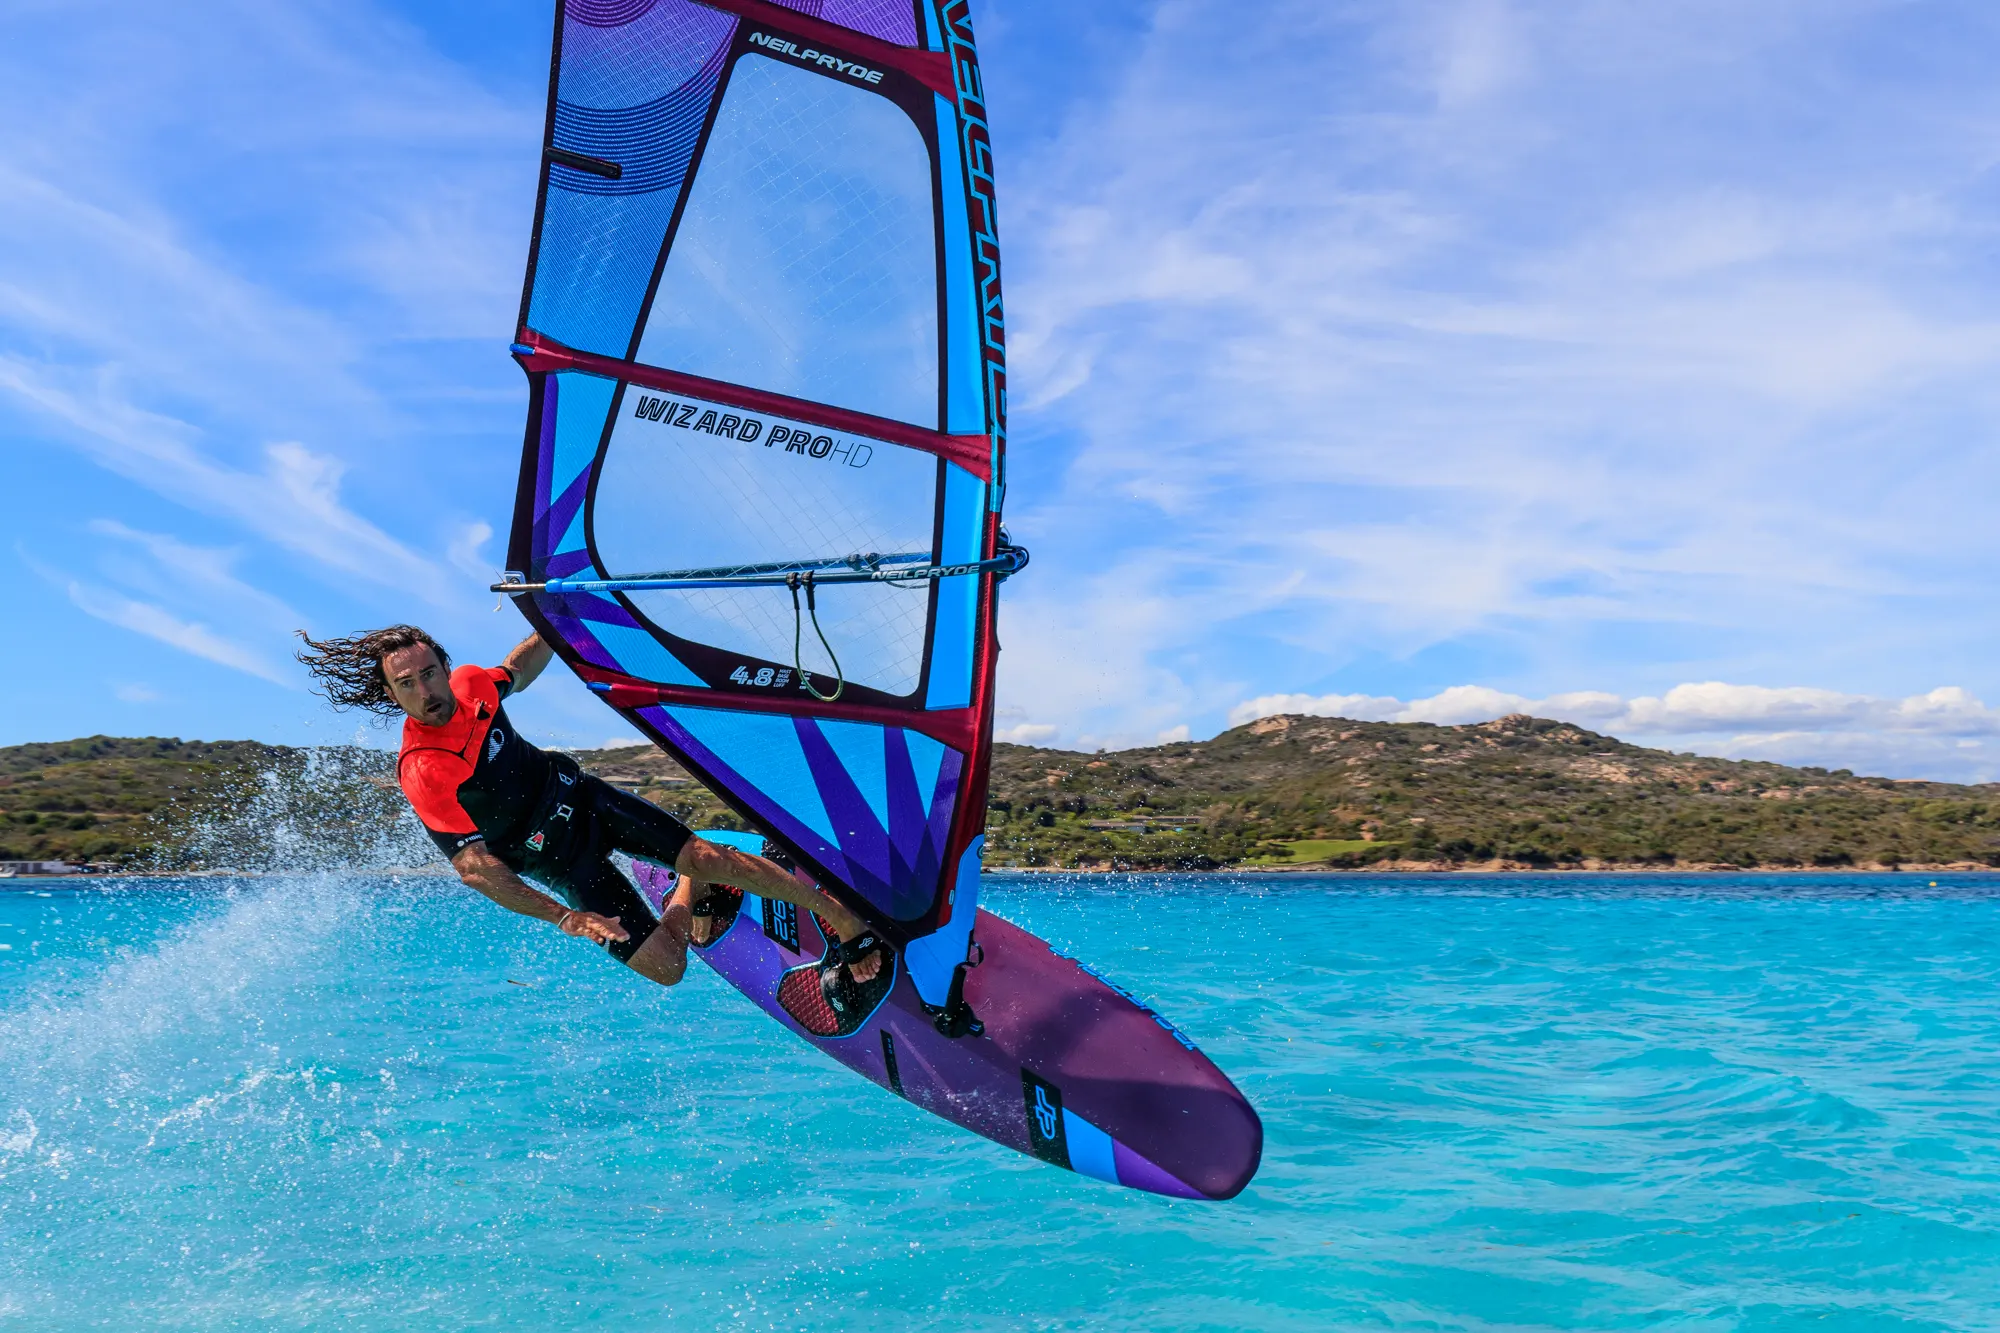 wizard pro hd neilpryde 2020 plachta na freestyle windsurfing karlin